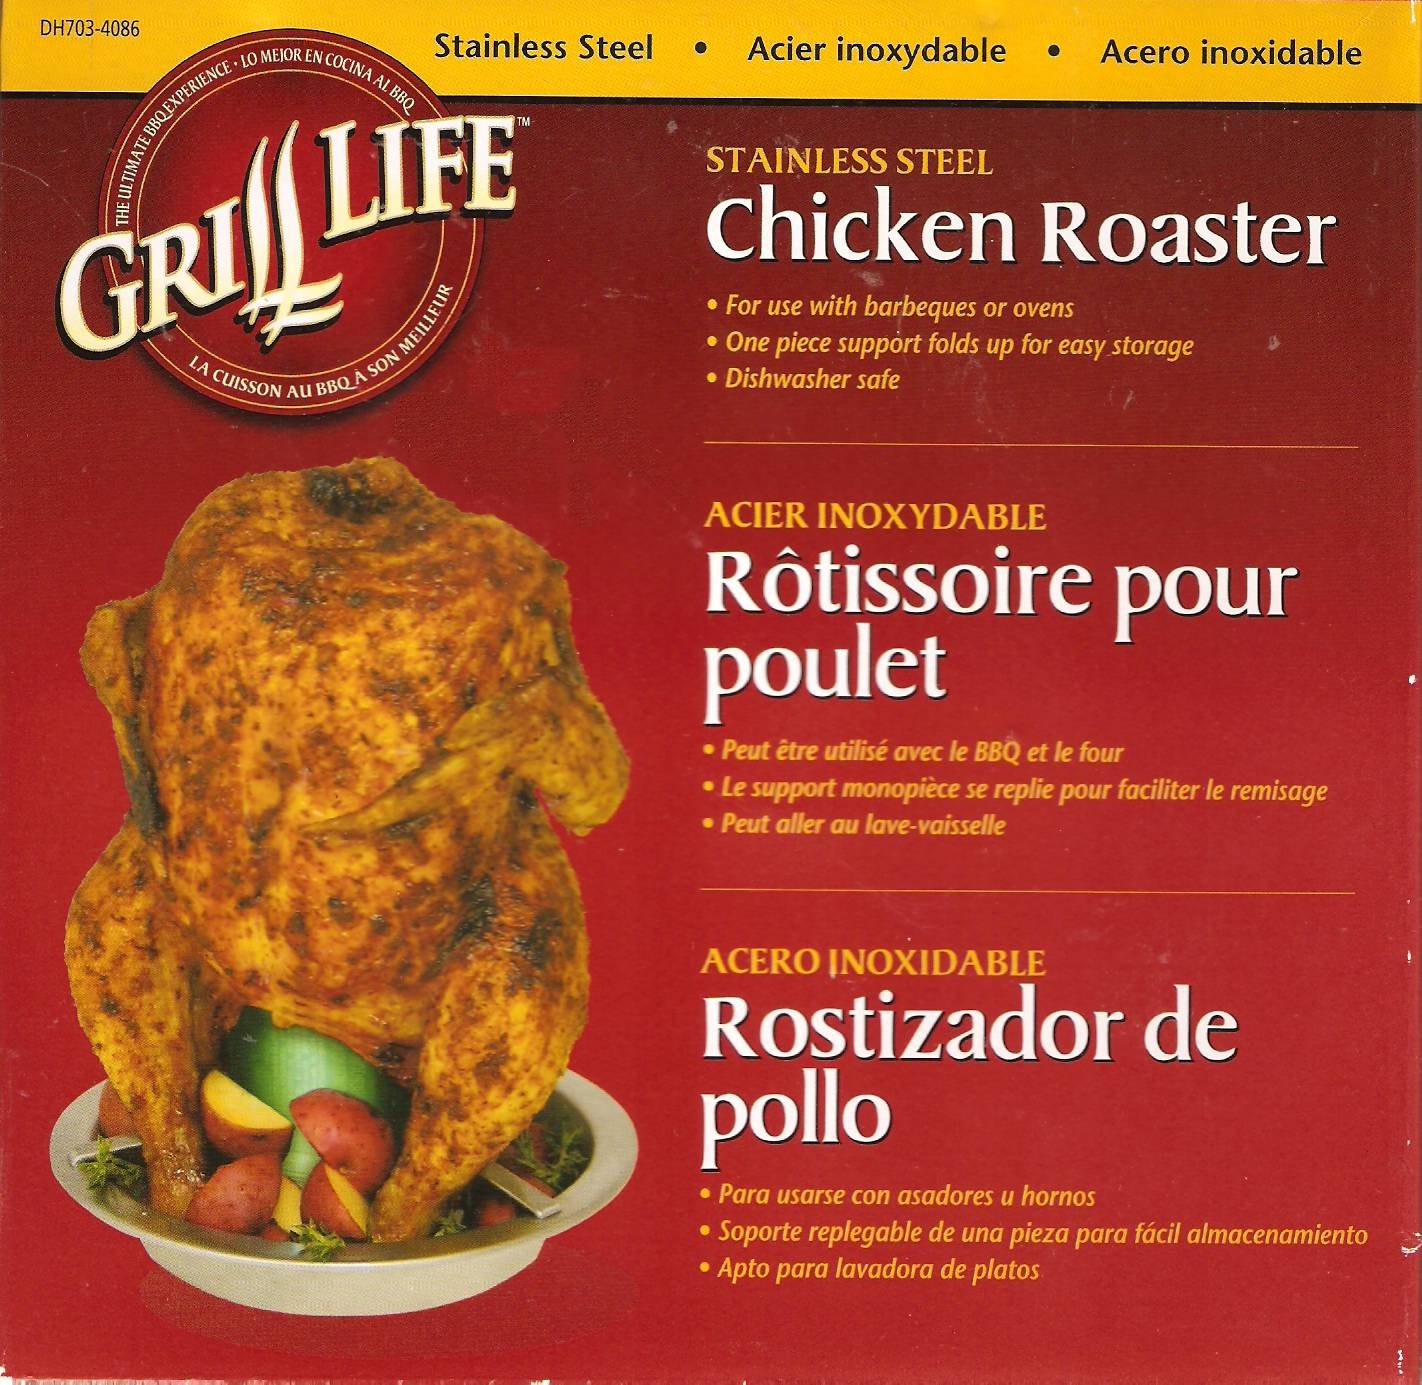 Grill Life Stainless Steel Chicken Roaster